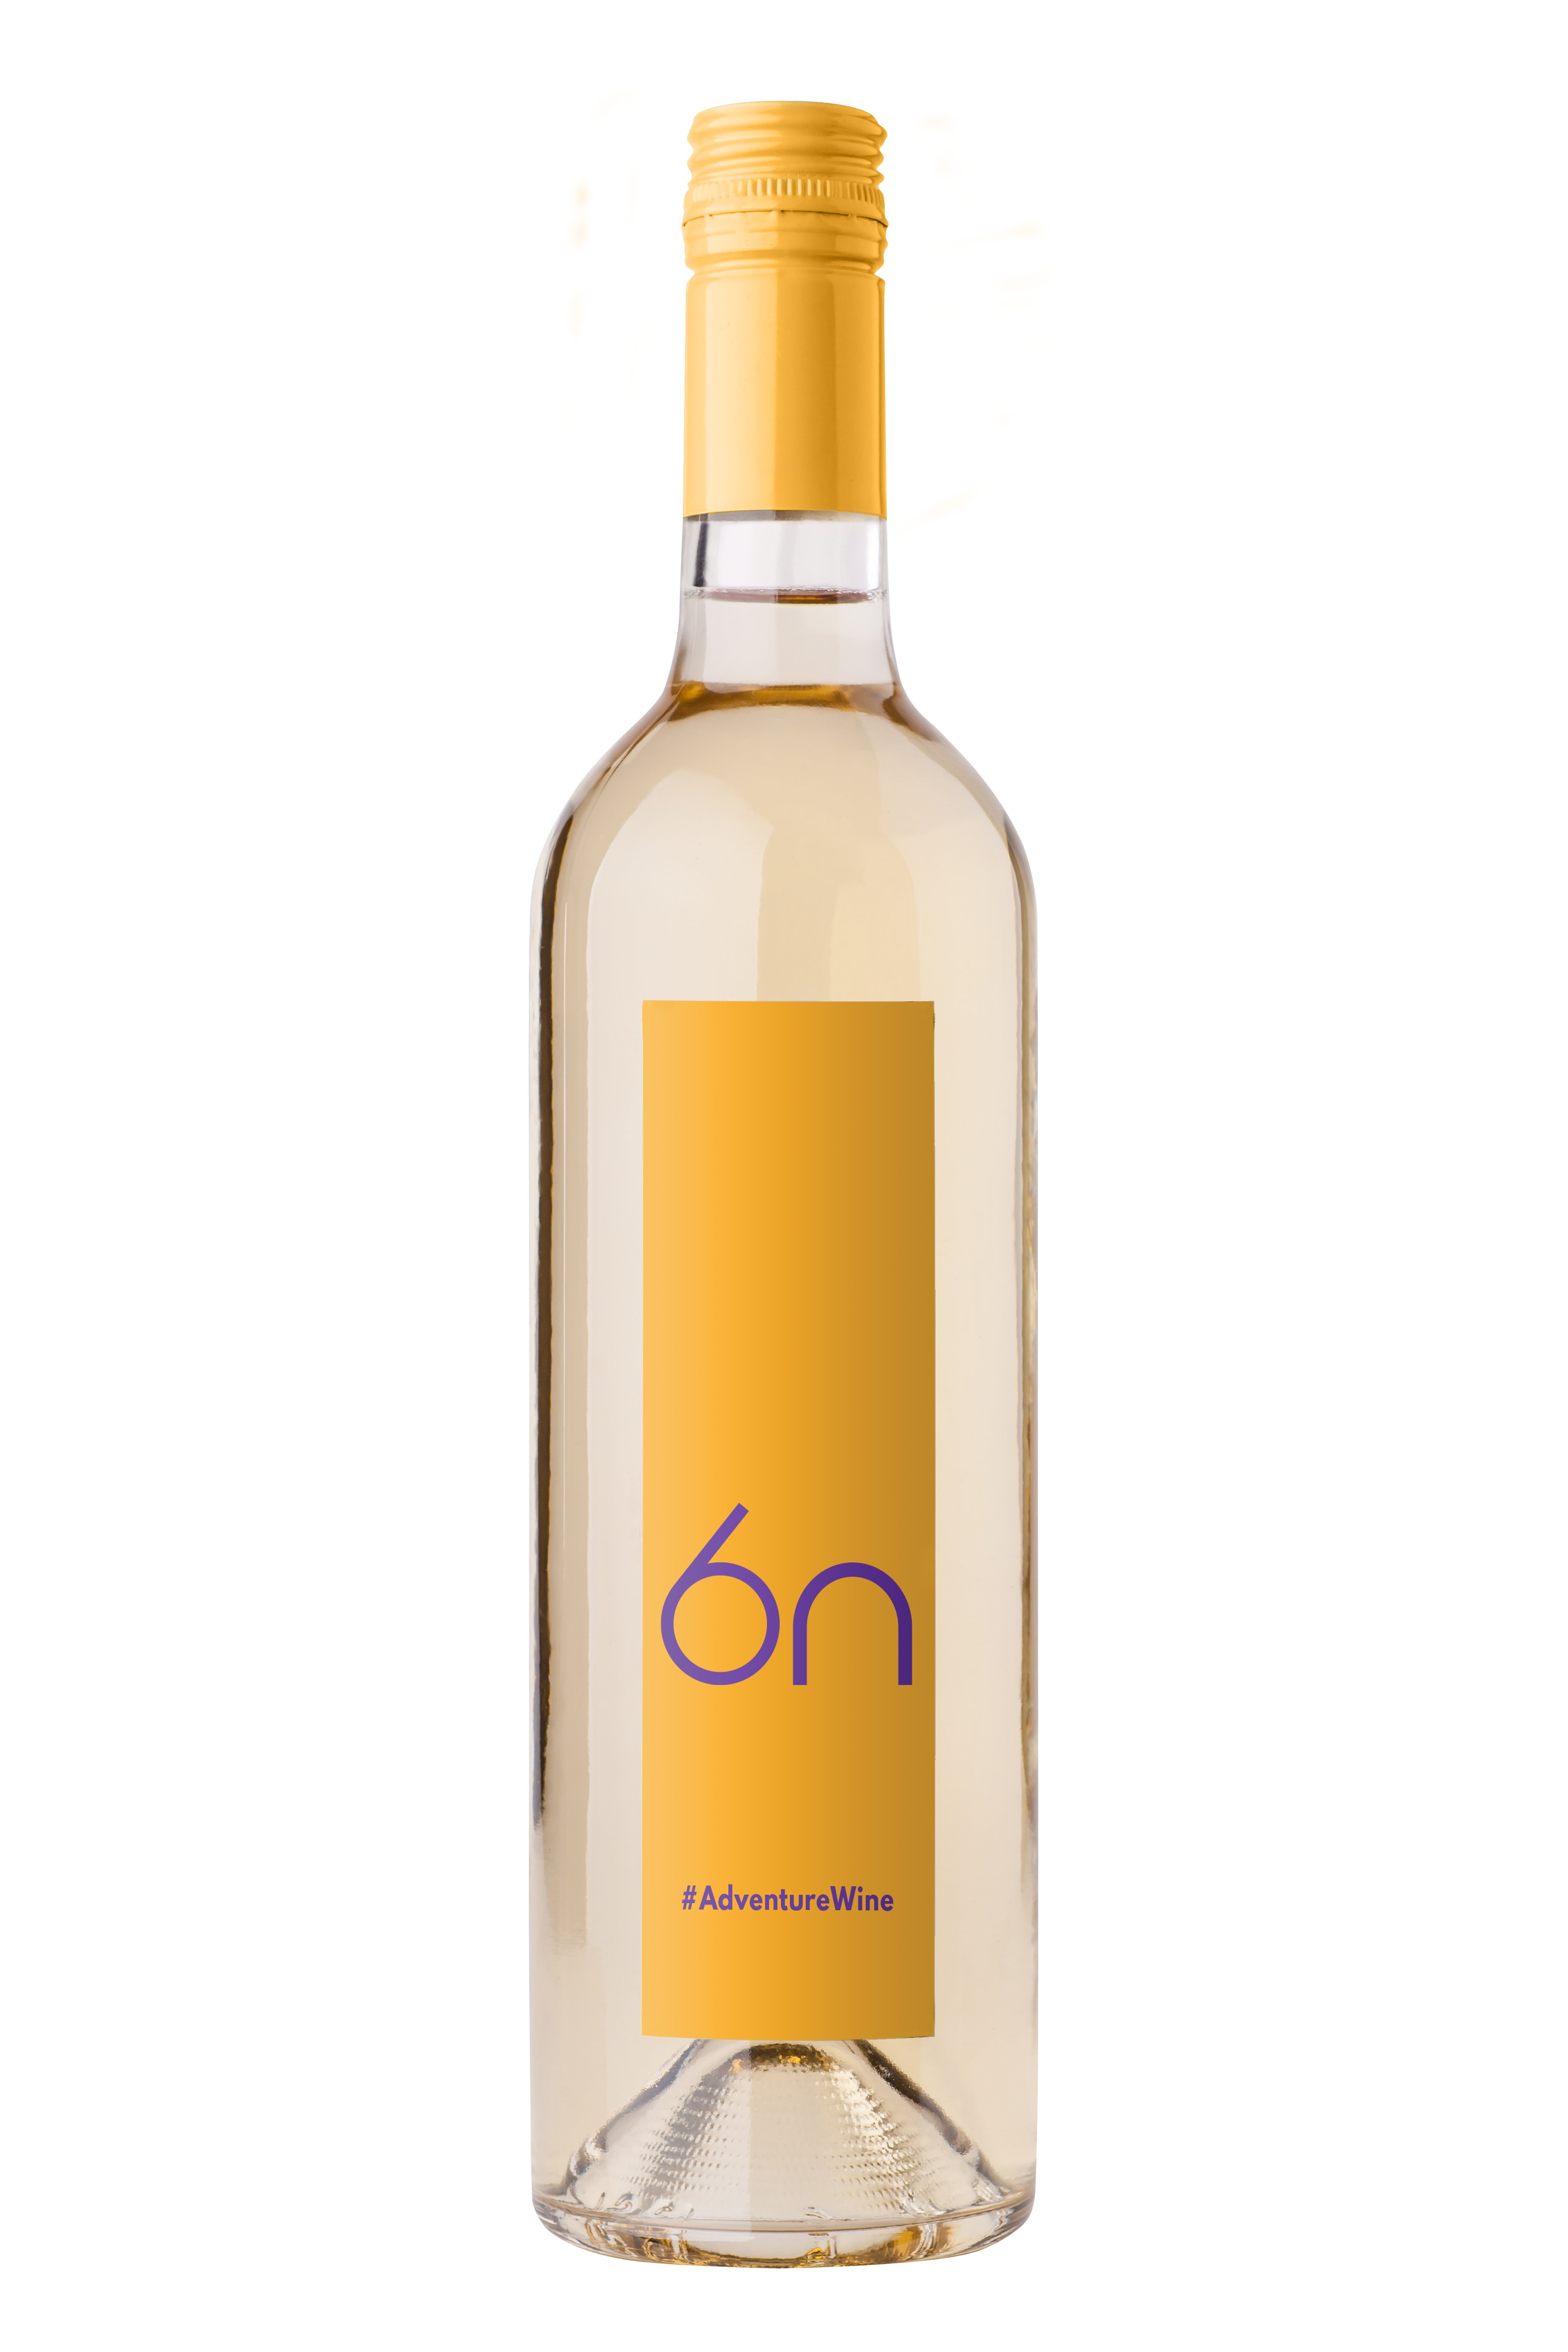 6n orange #adventurewine